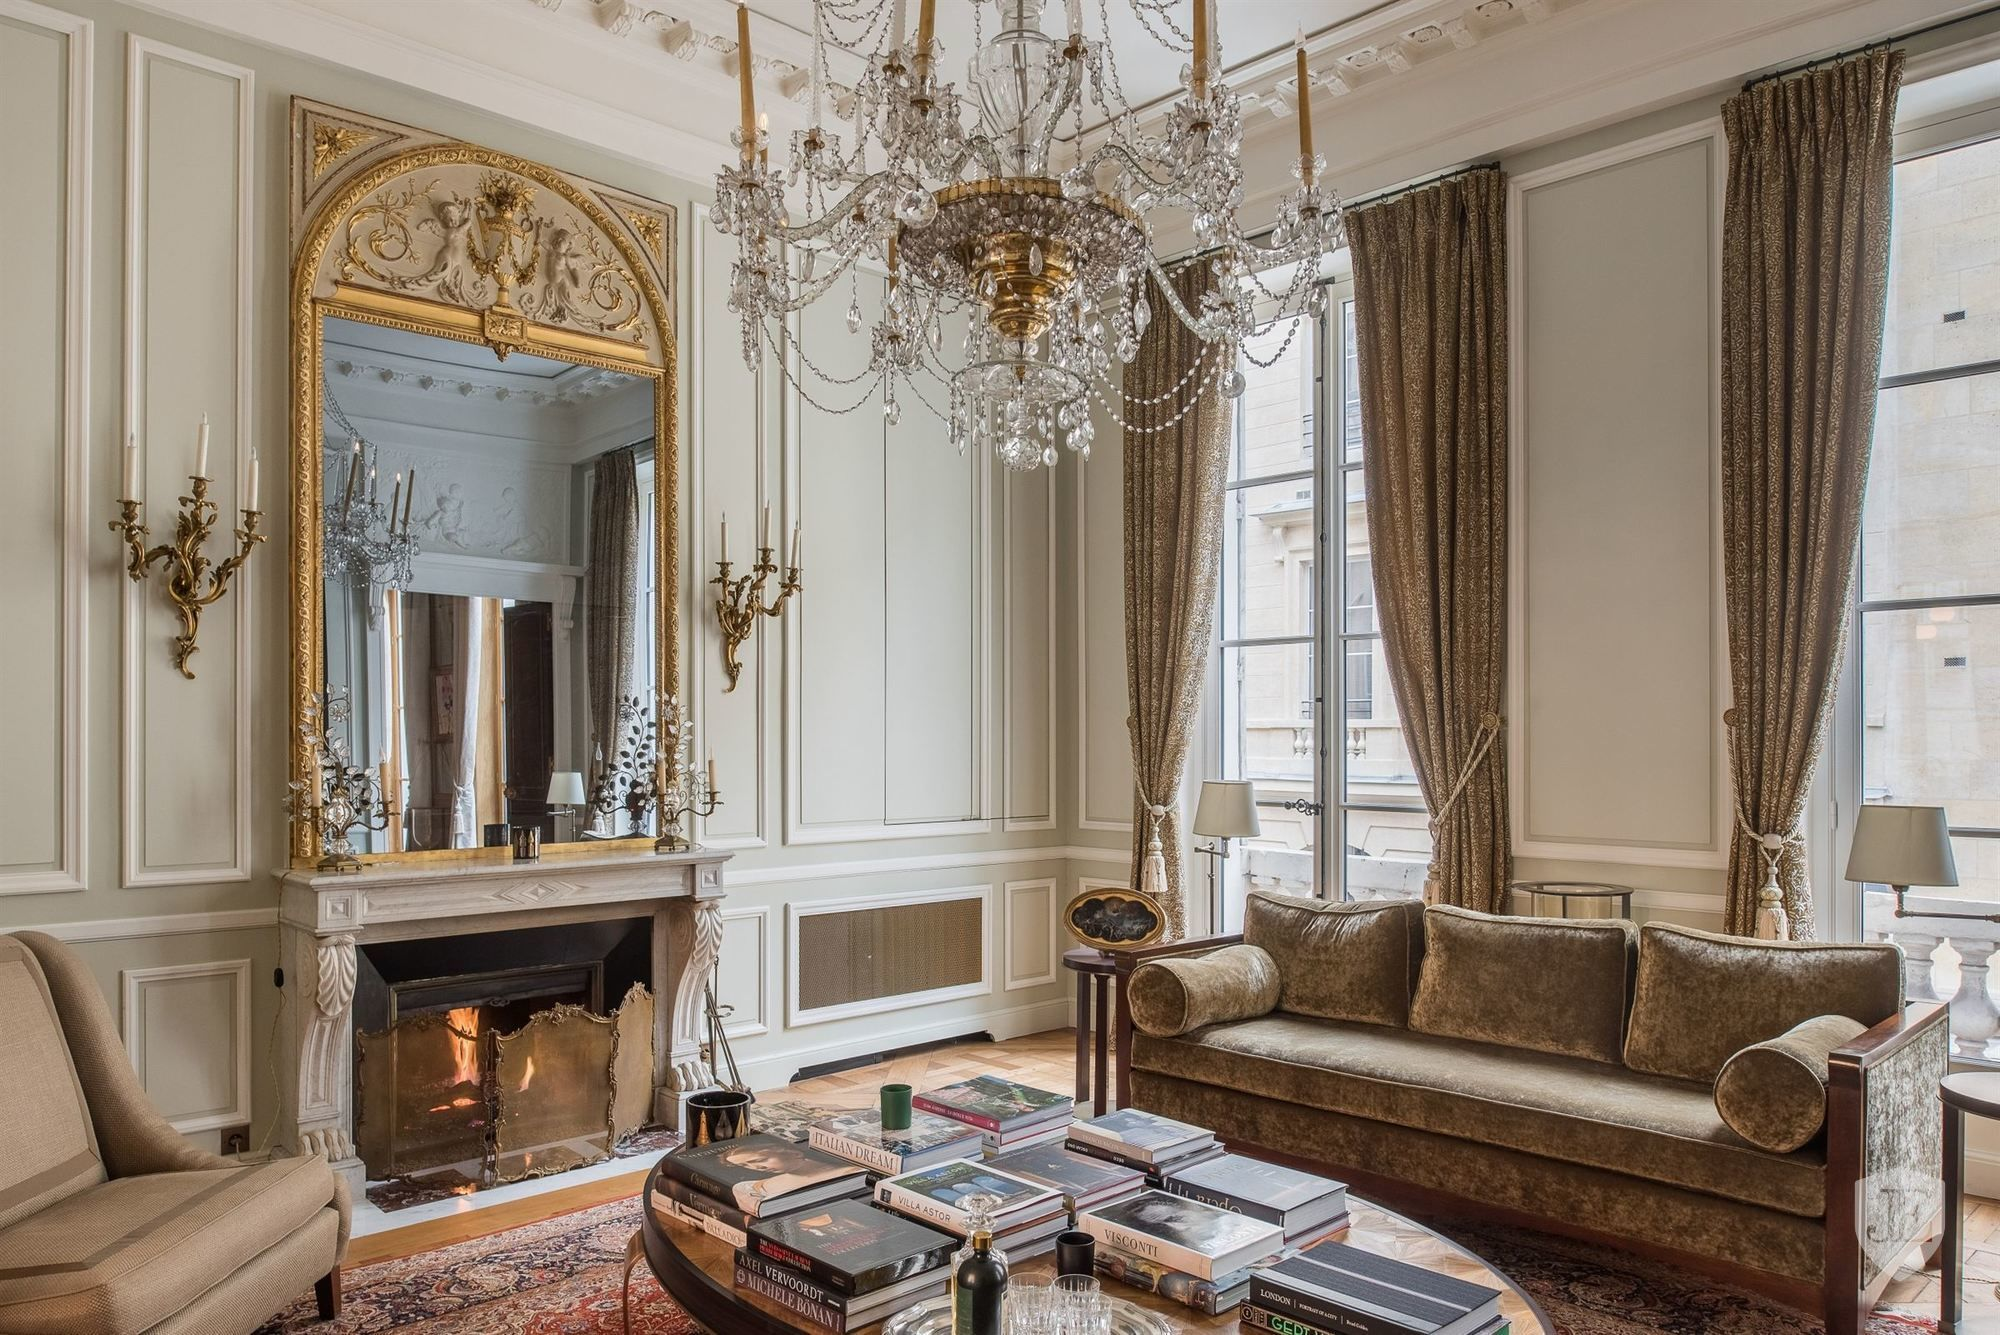 Odéon in PARIS France for sale on JamesEdition | Luxury ...